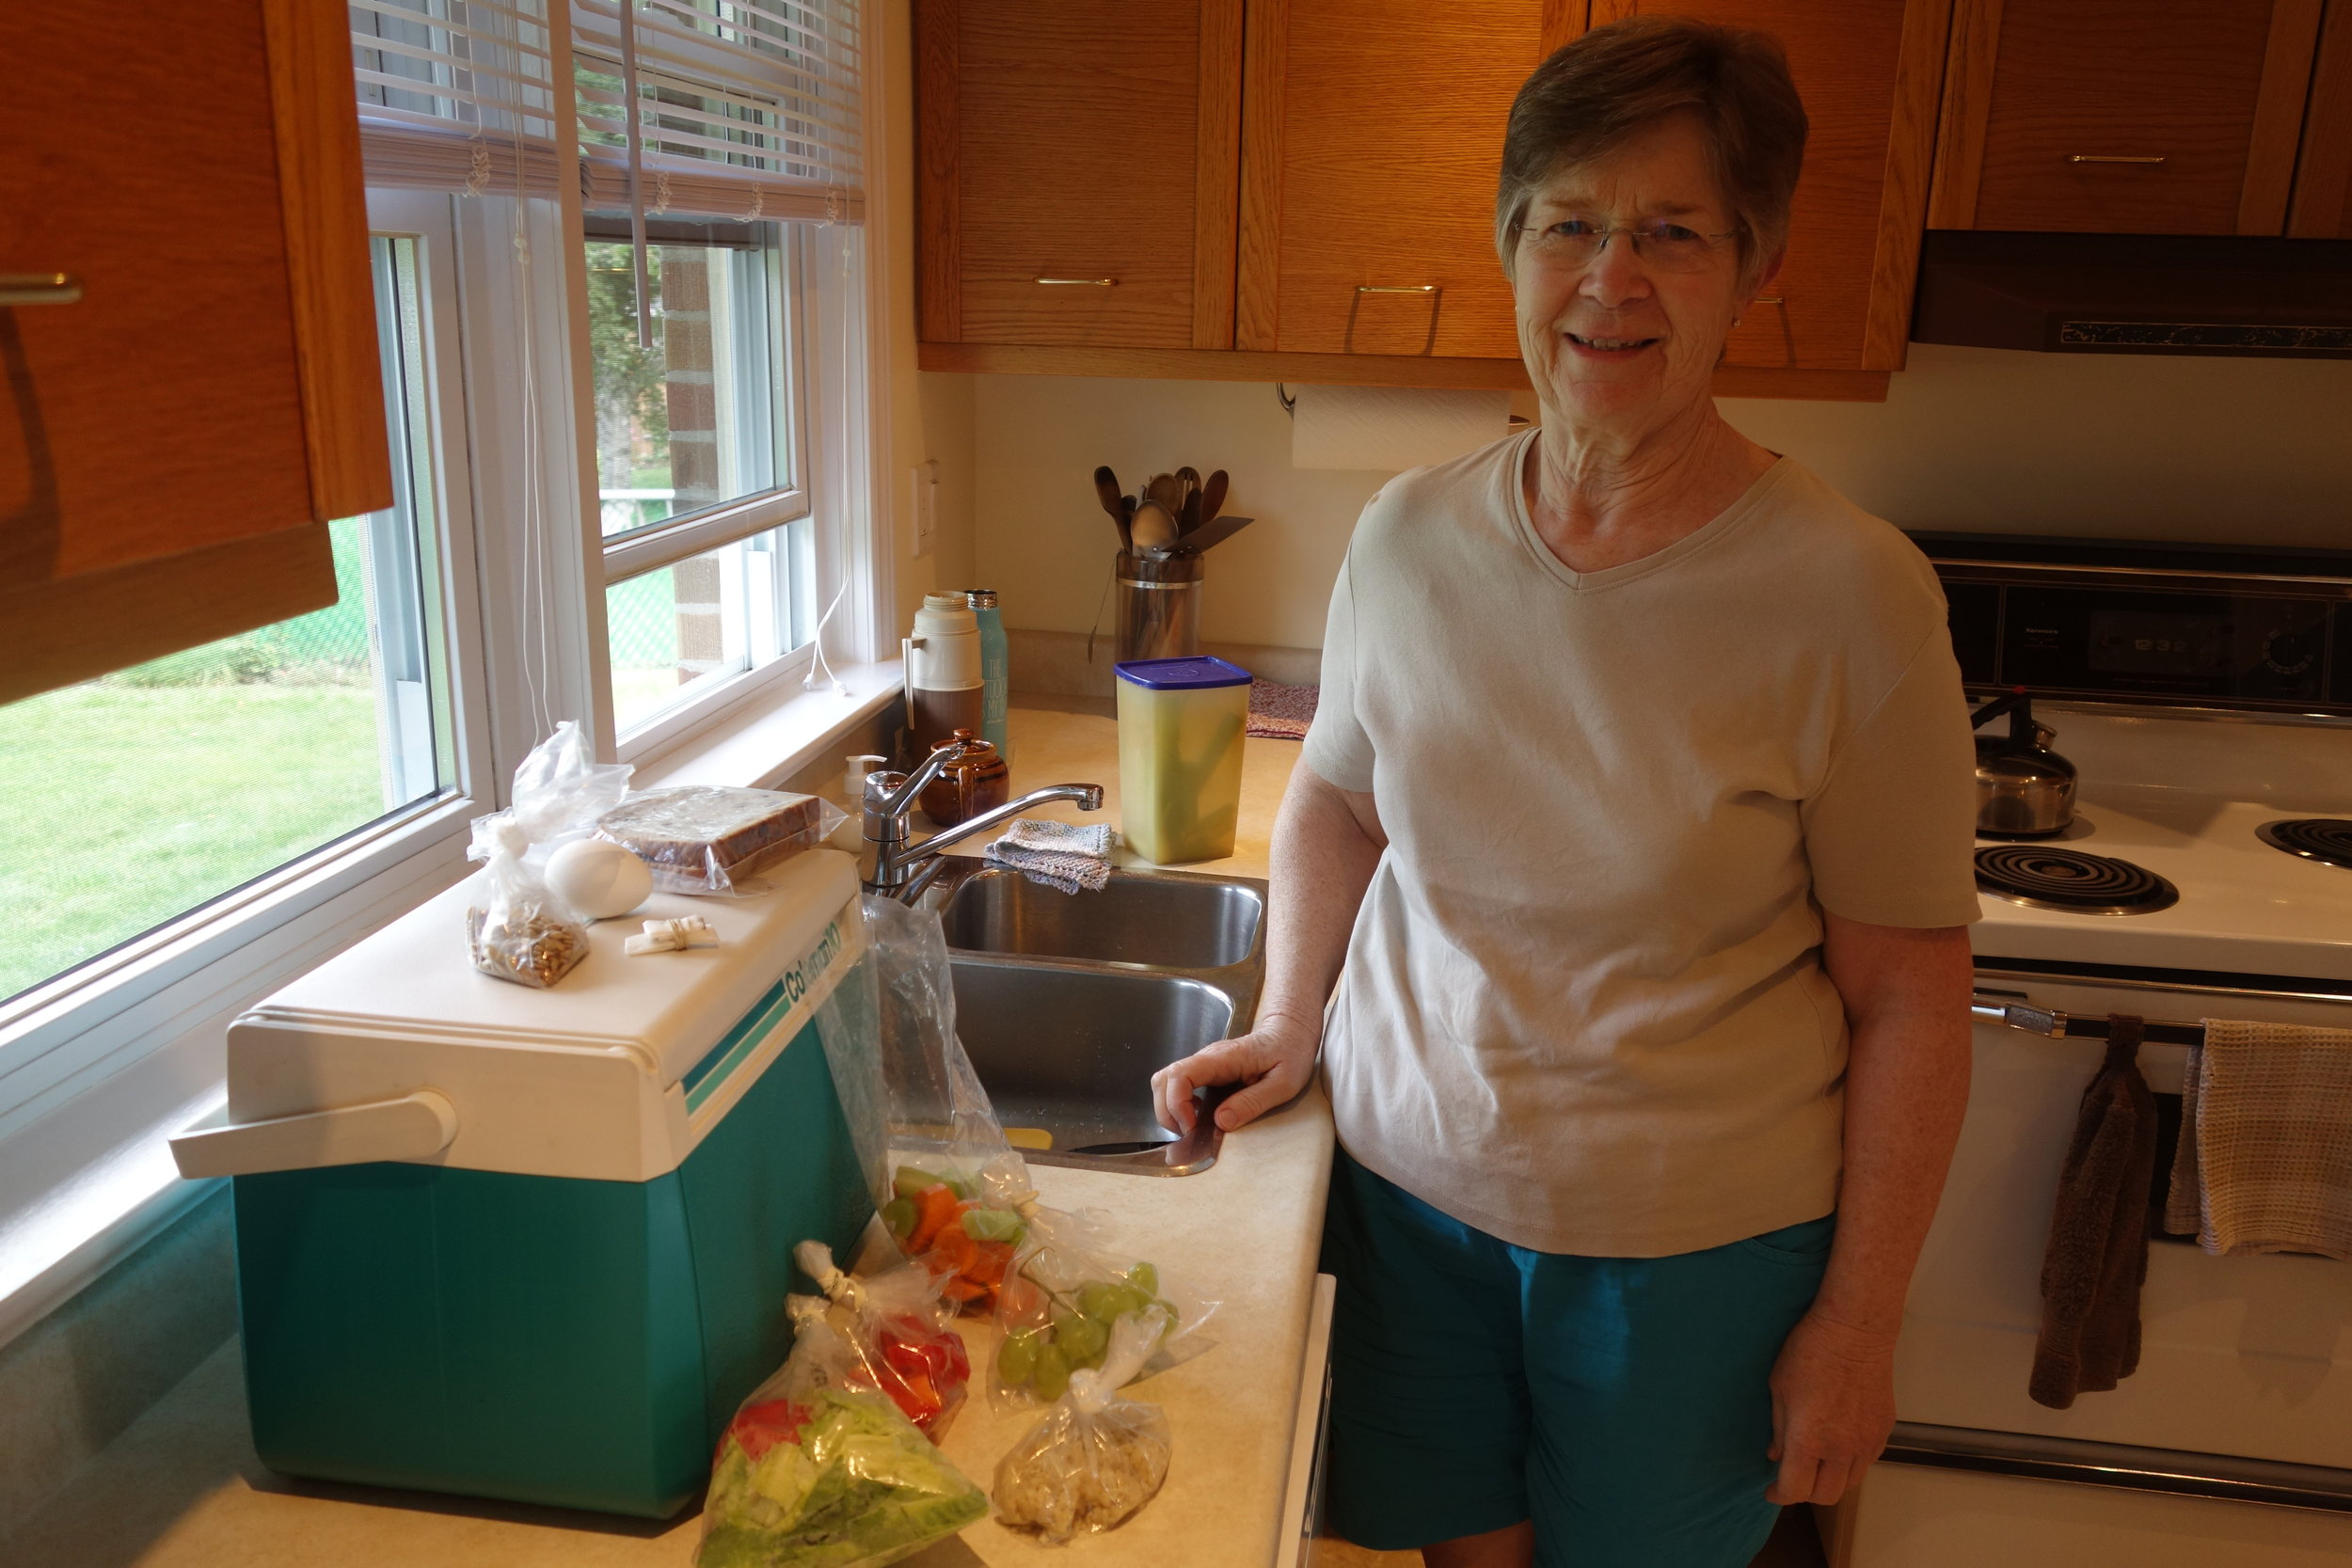 Barb used her camping skills, recycled bags, and frozen food to pack me several meals for the road.